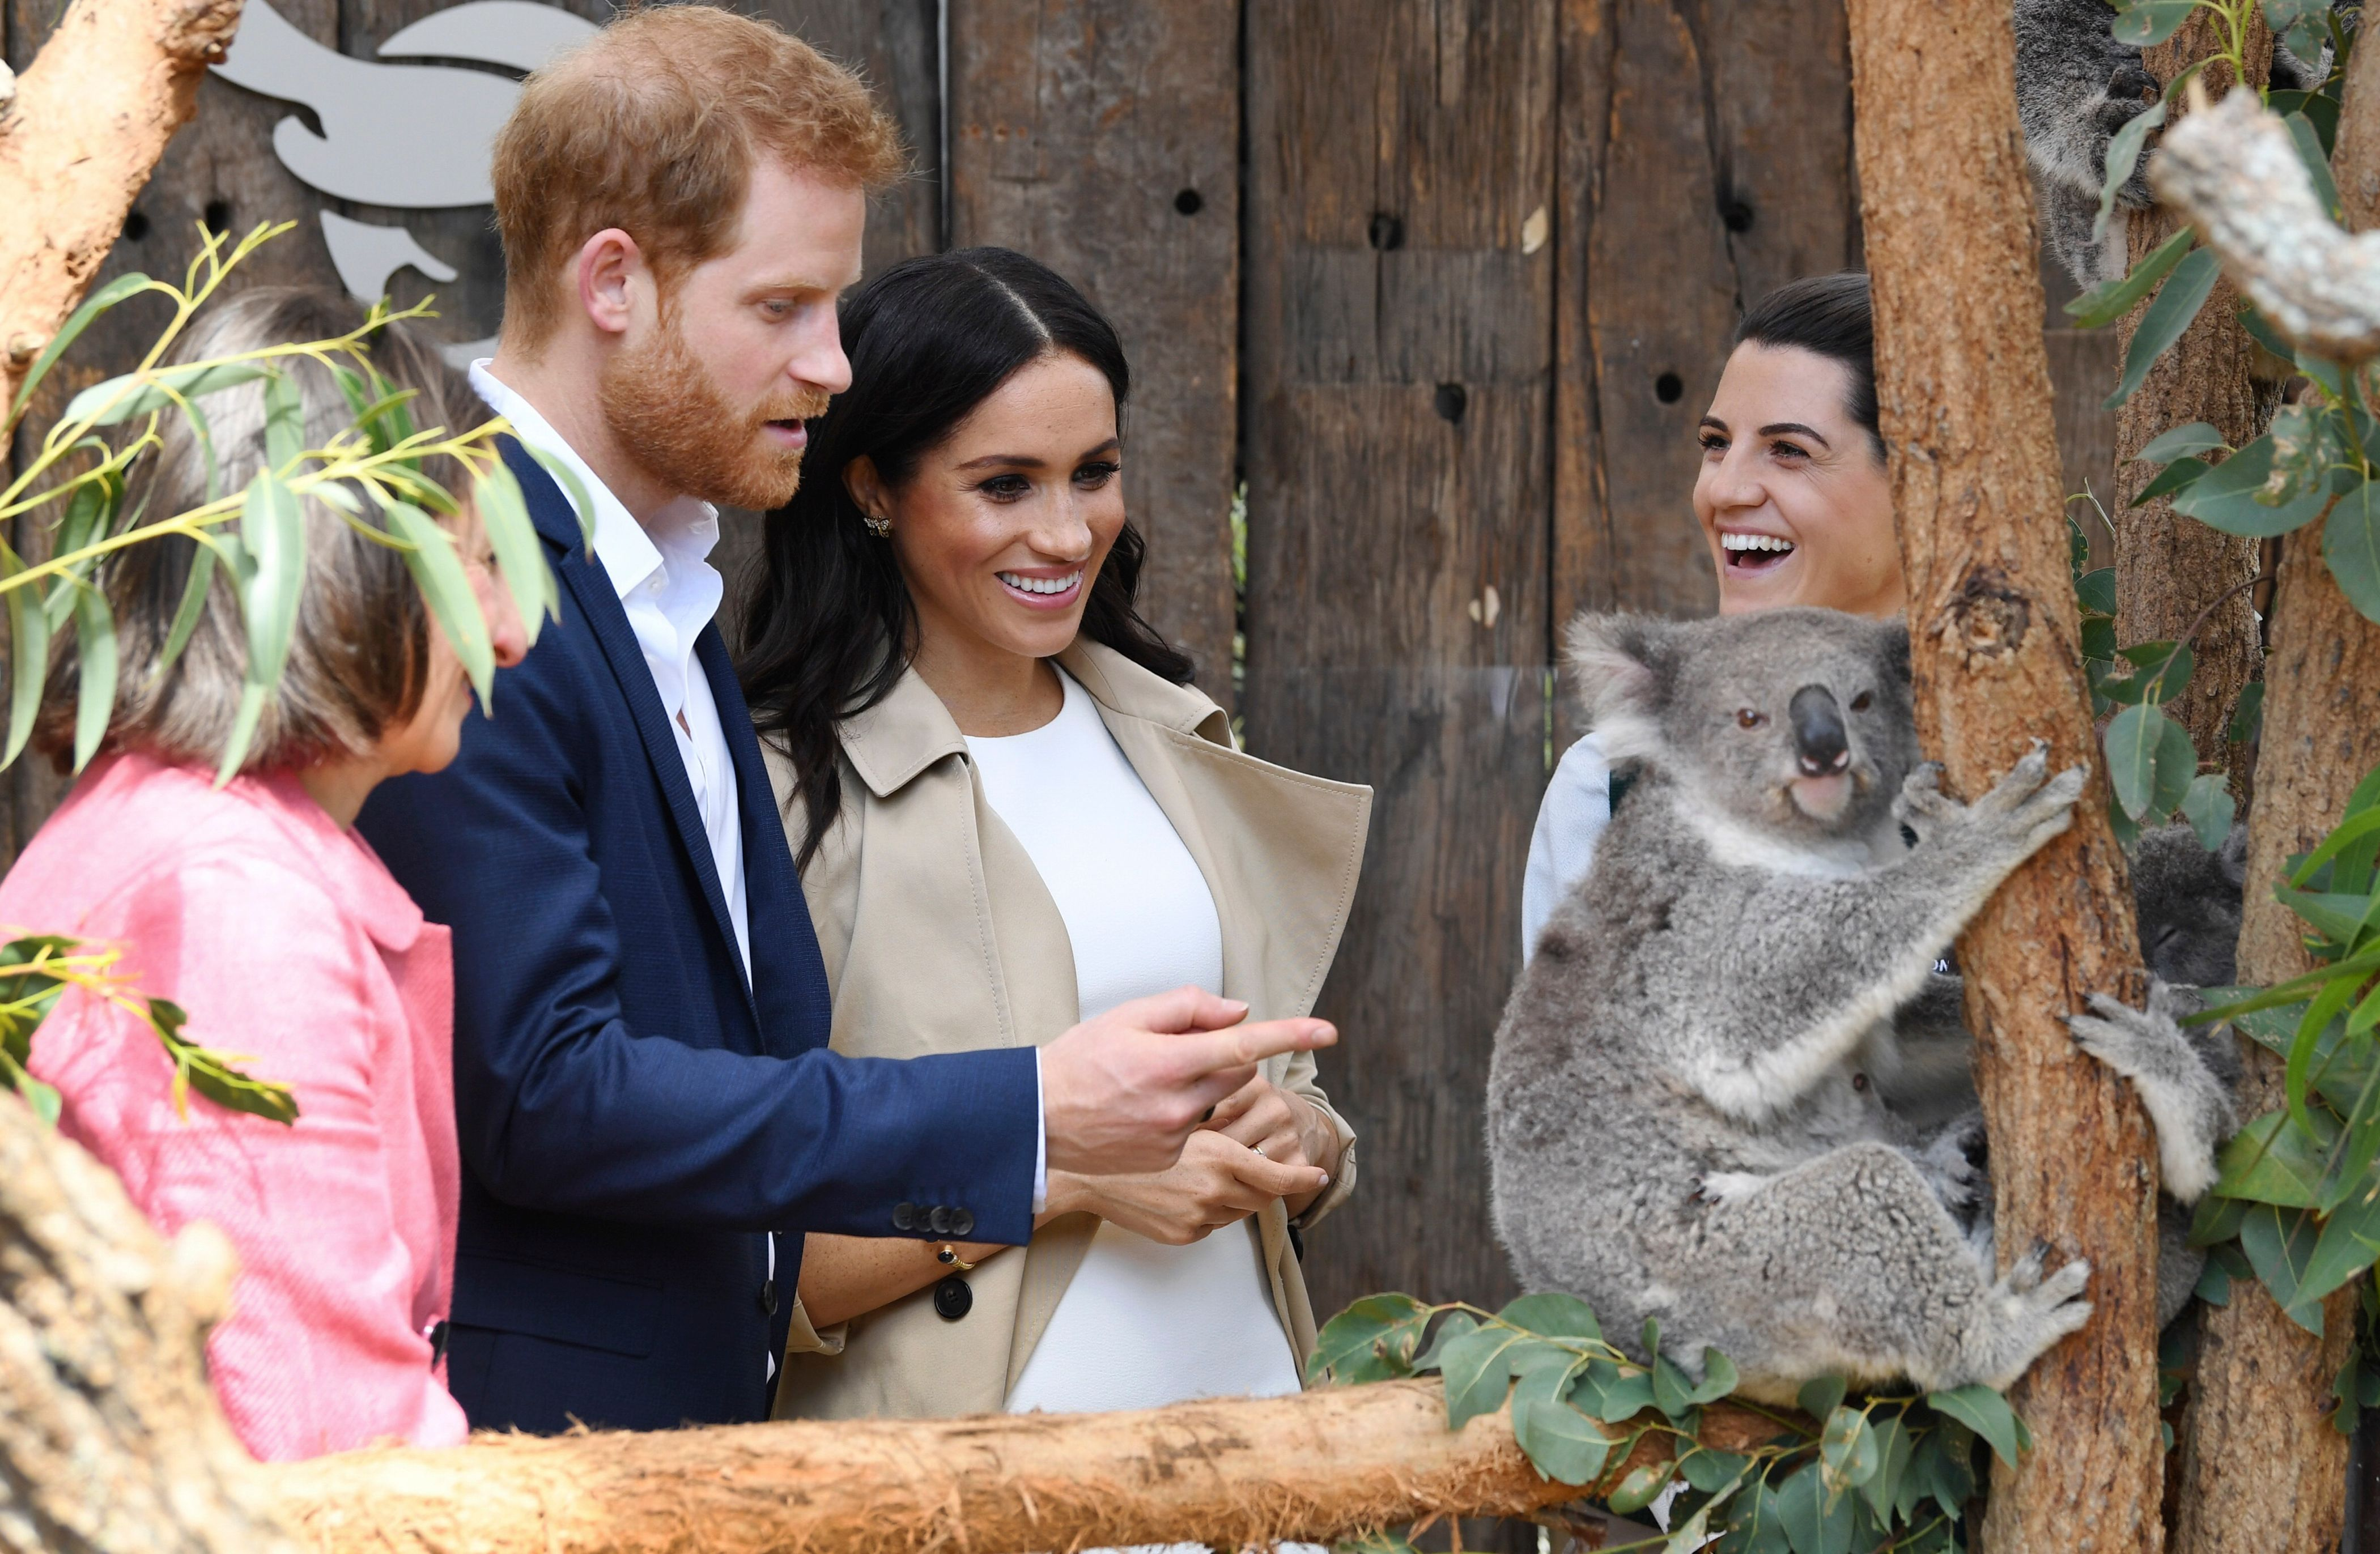 Britain's Prince Harry and his wife Meghan meet koalas named Ruby and Meghan at Taronga Zoo in Sydney, Australia on Oct. 16, 2018.